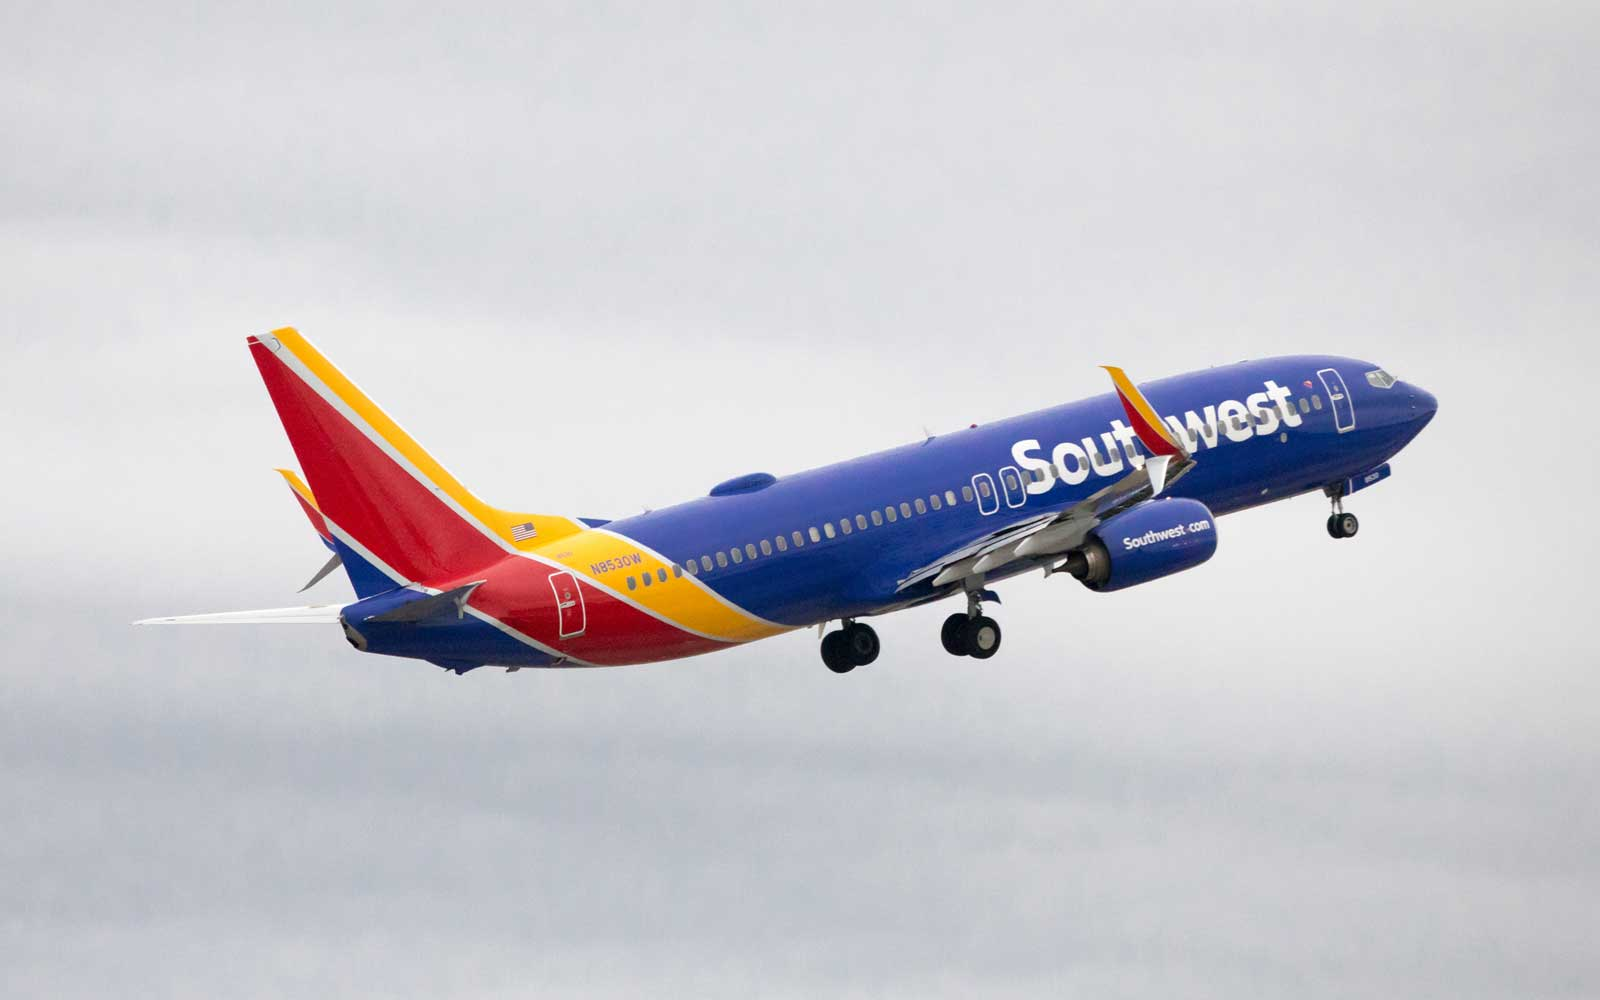 Southwest Flight Makes Emergency Landing After Pressure Issues Cause Passenger's Ear to Bleed